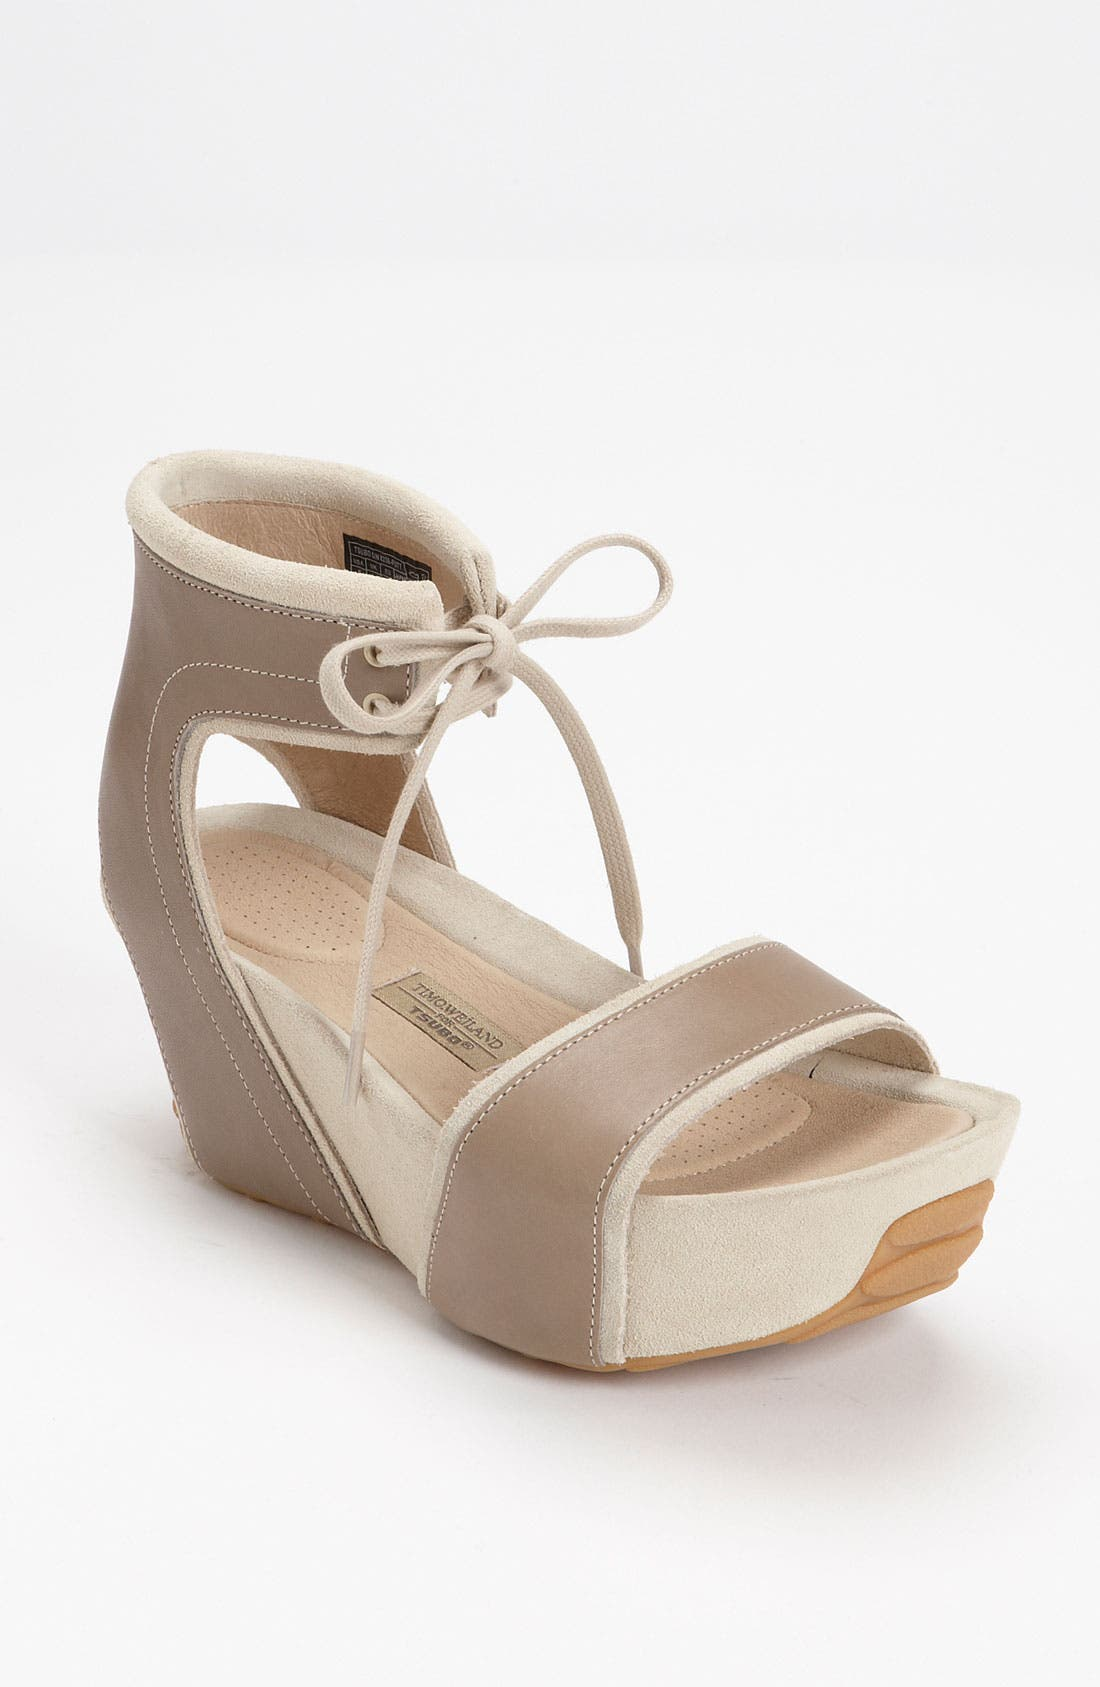 Main Image - Timo Weiland for Tsubo 'Sedna' Wedge